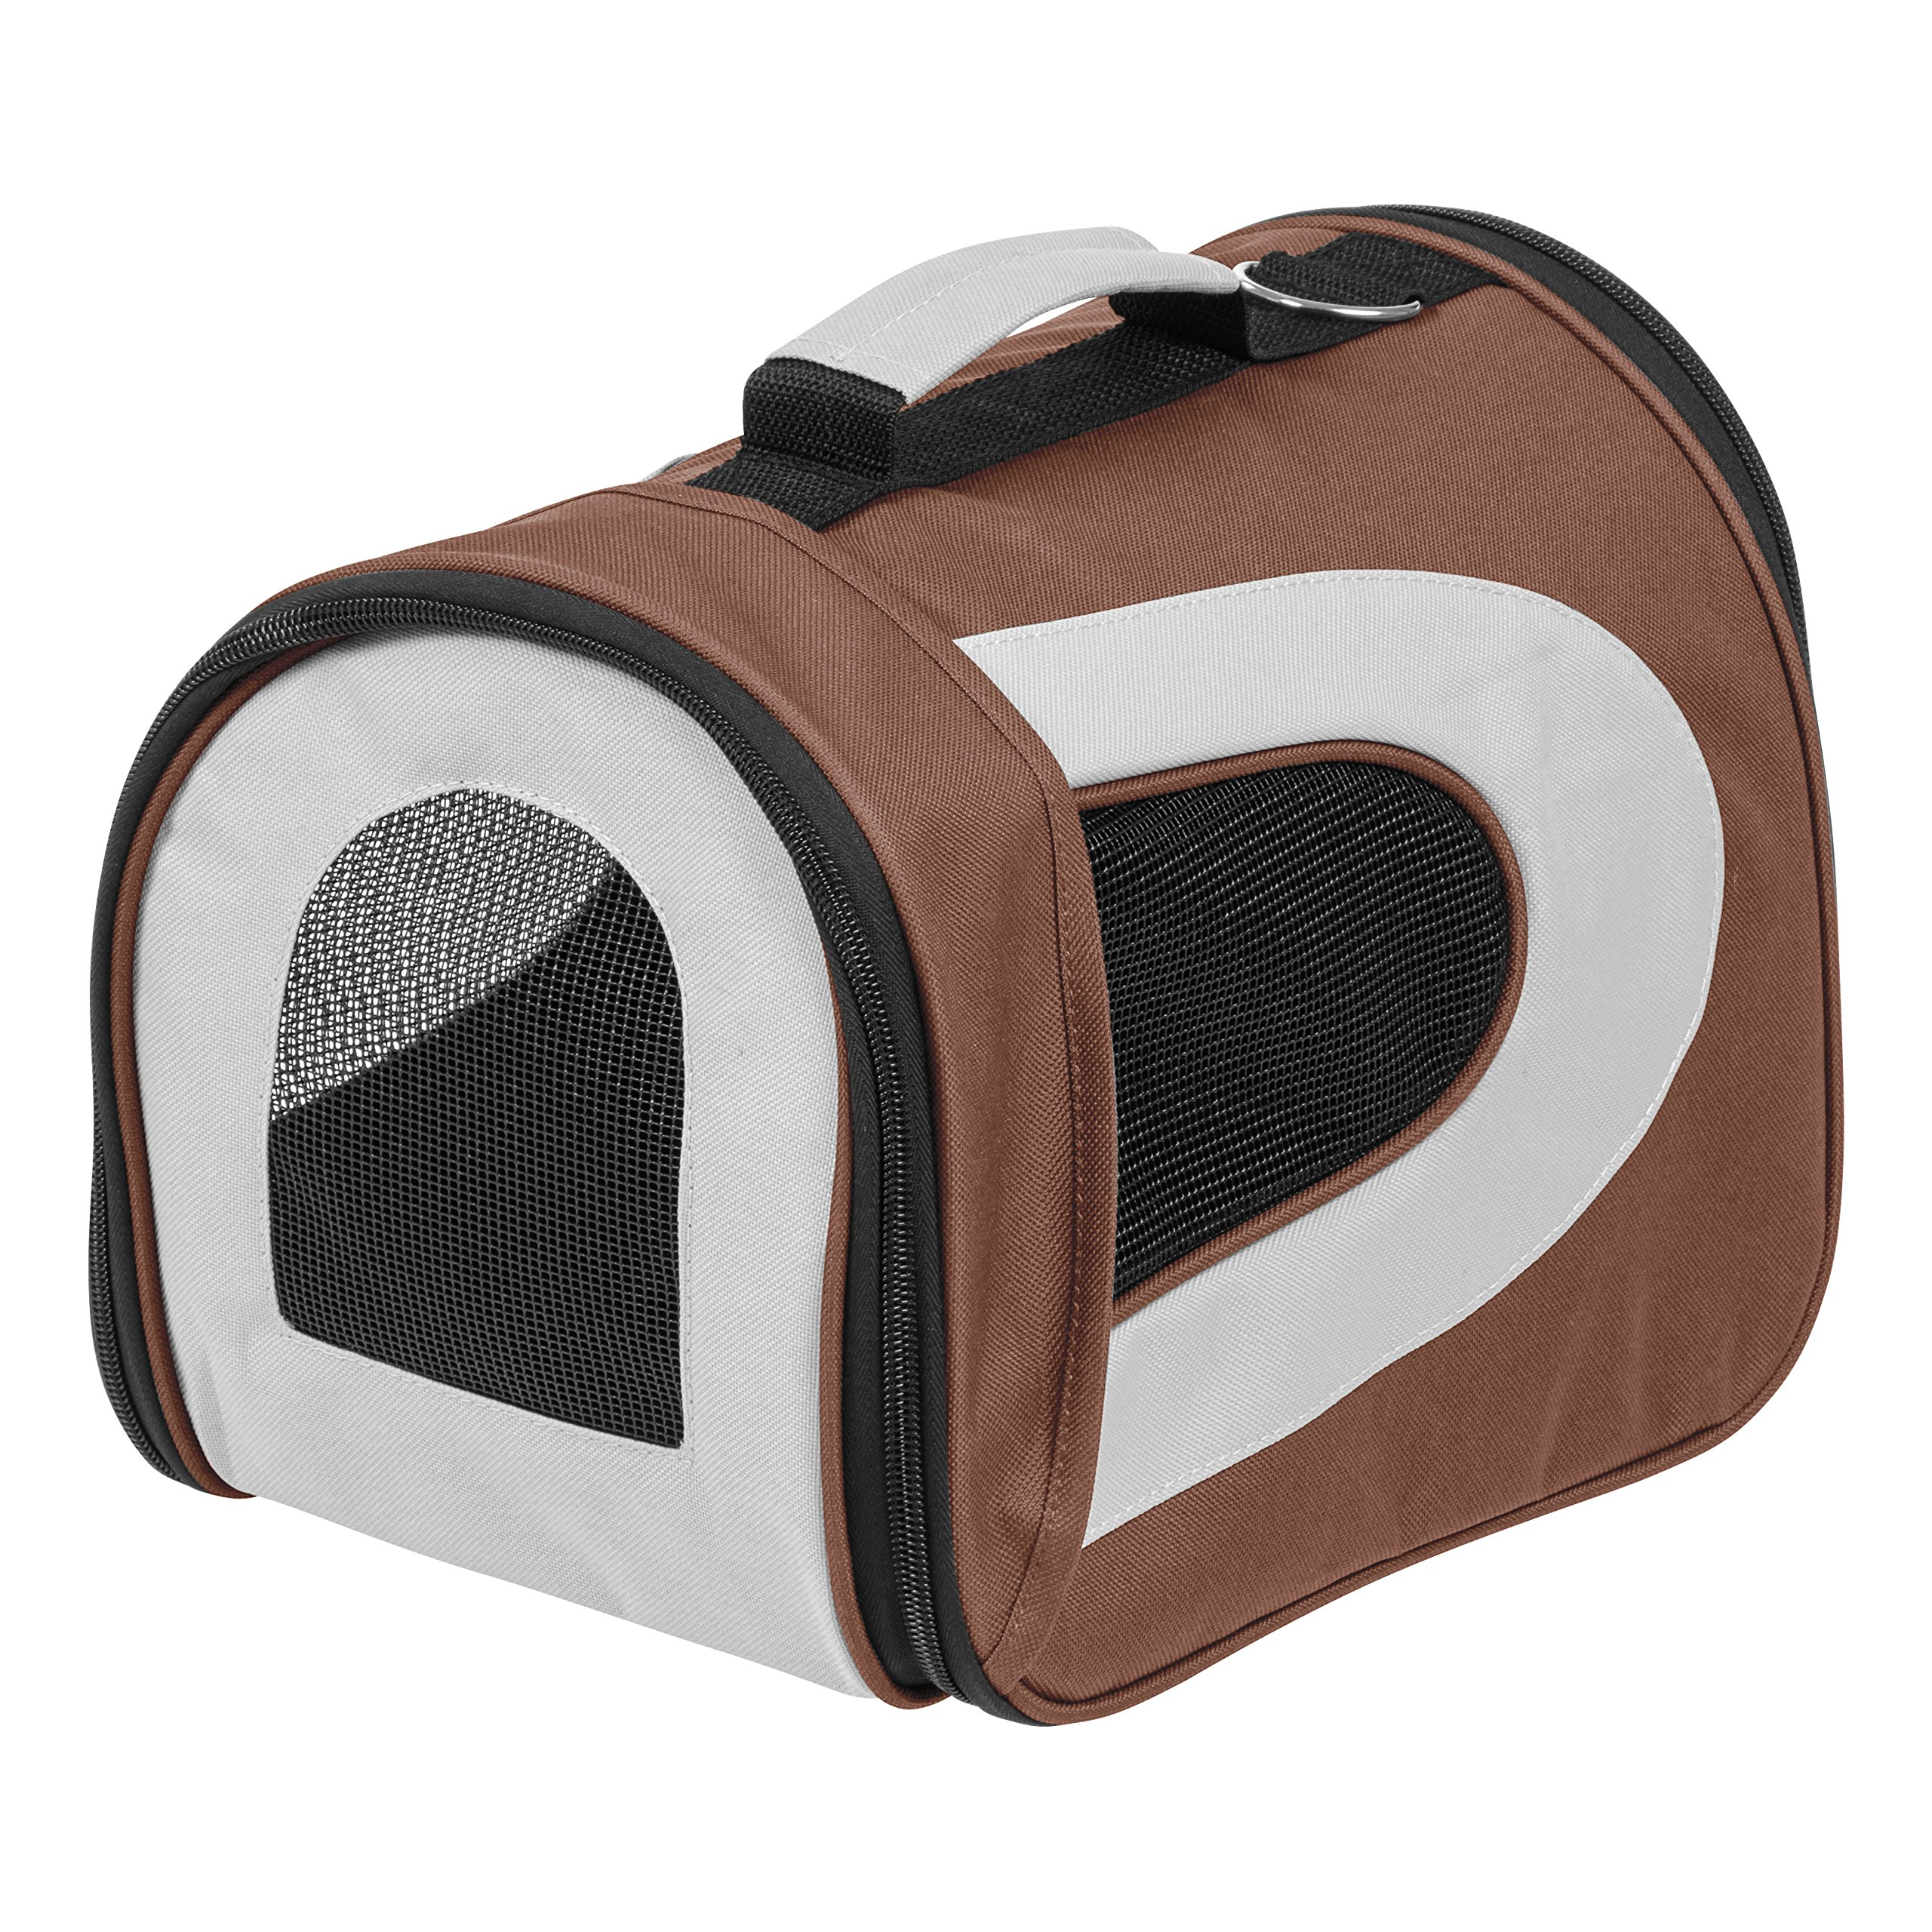 IRIS Small Soft Sided Carrier, Brown